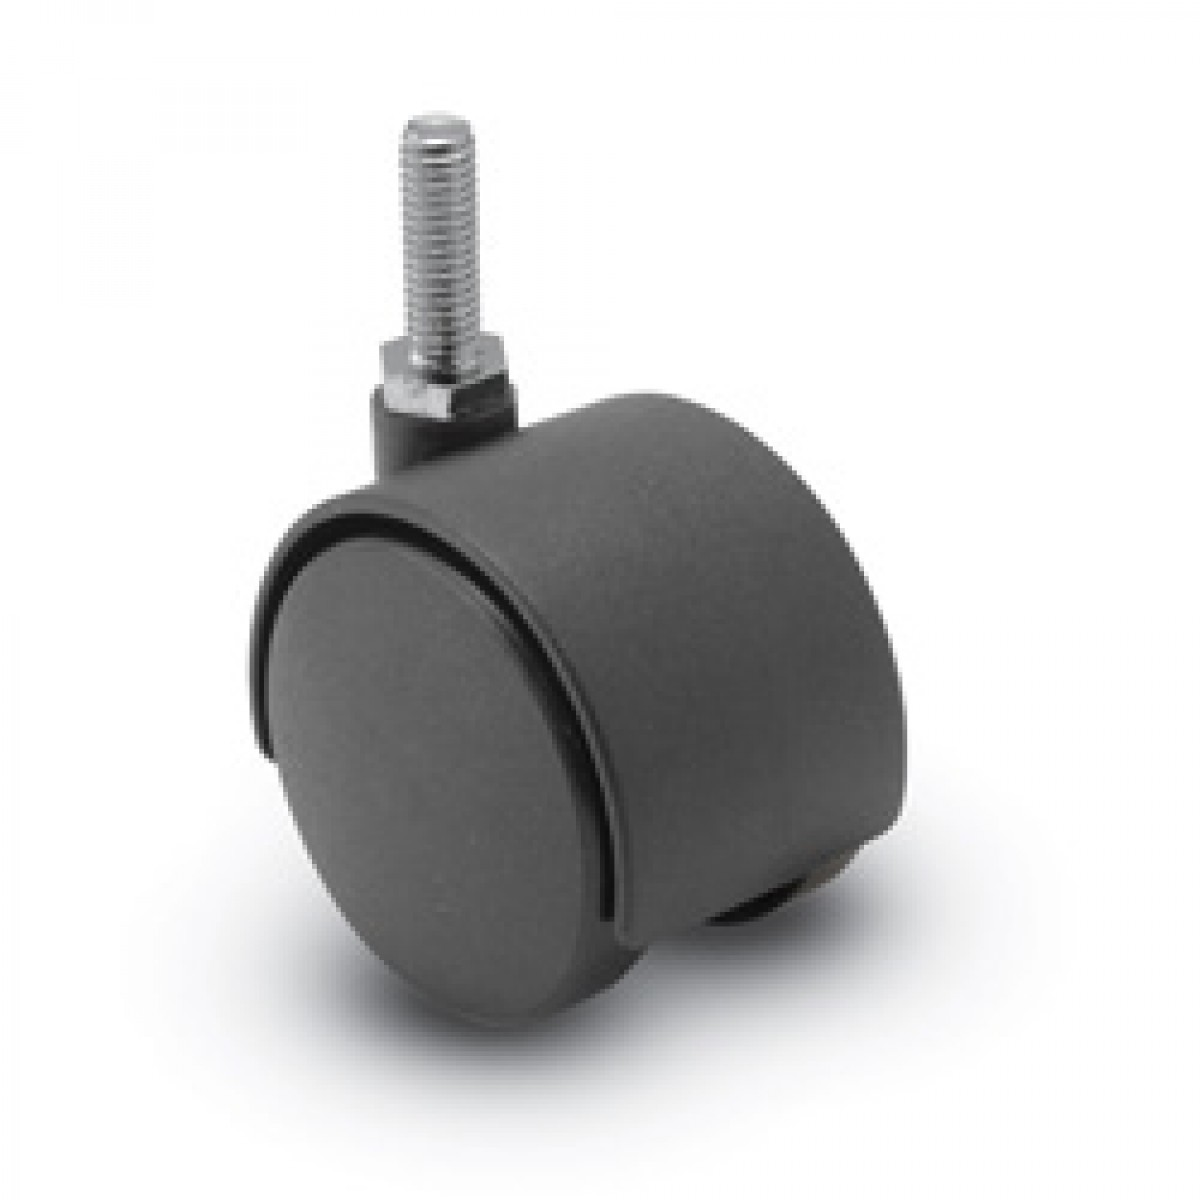 ... Overbed Caster Replacement Caster Standard Twin Wheel With Hood